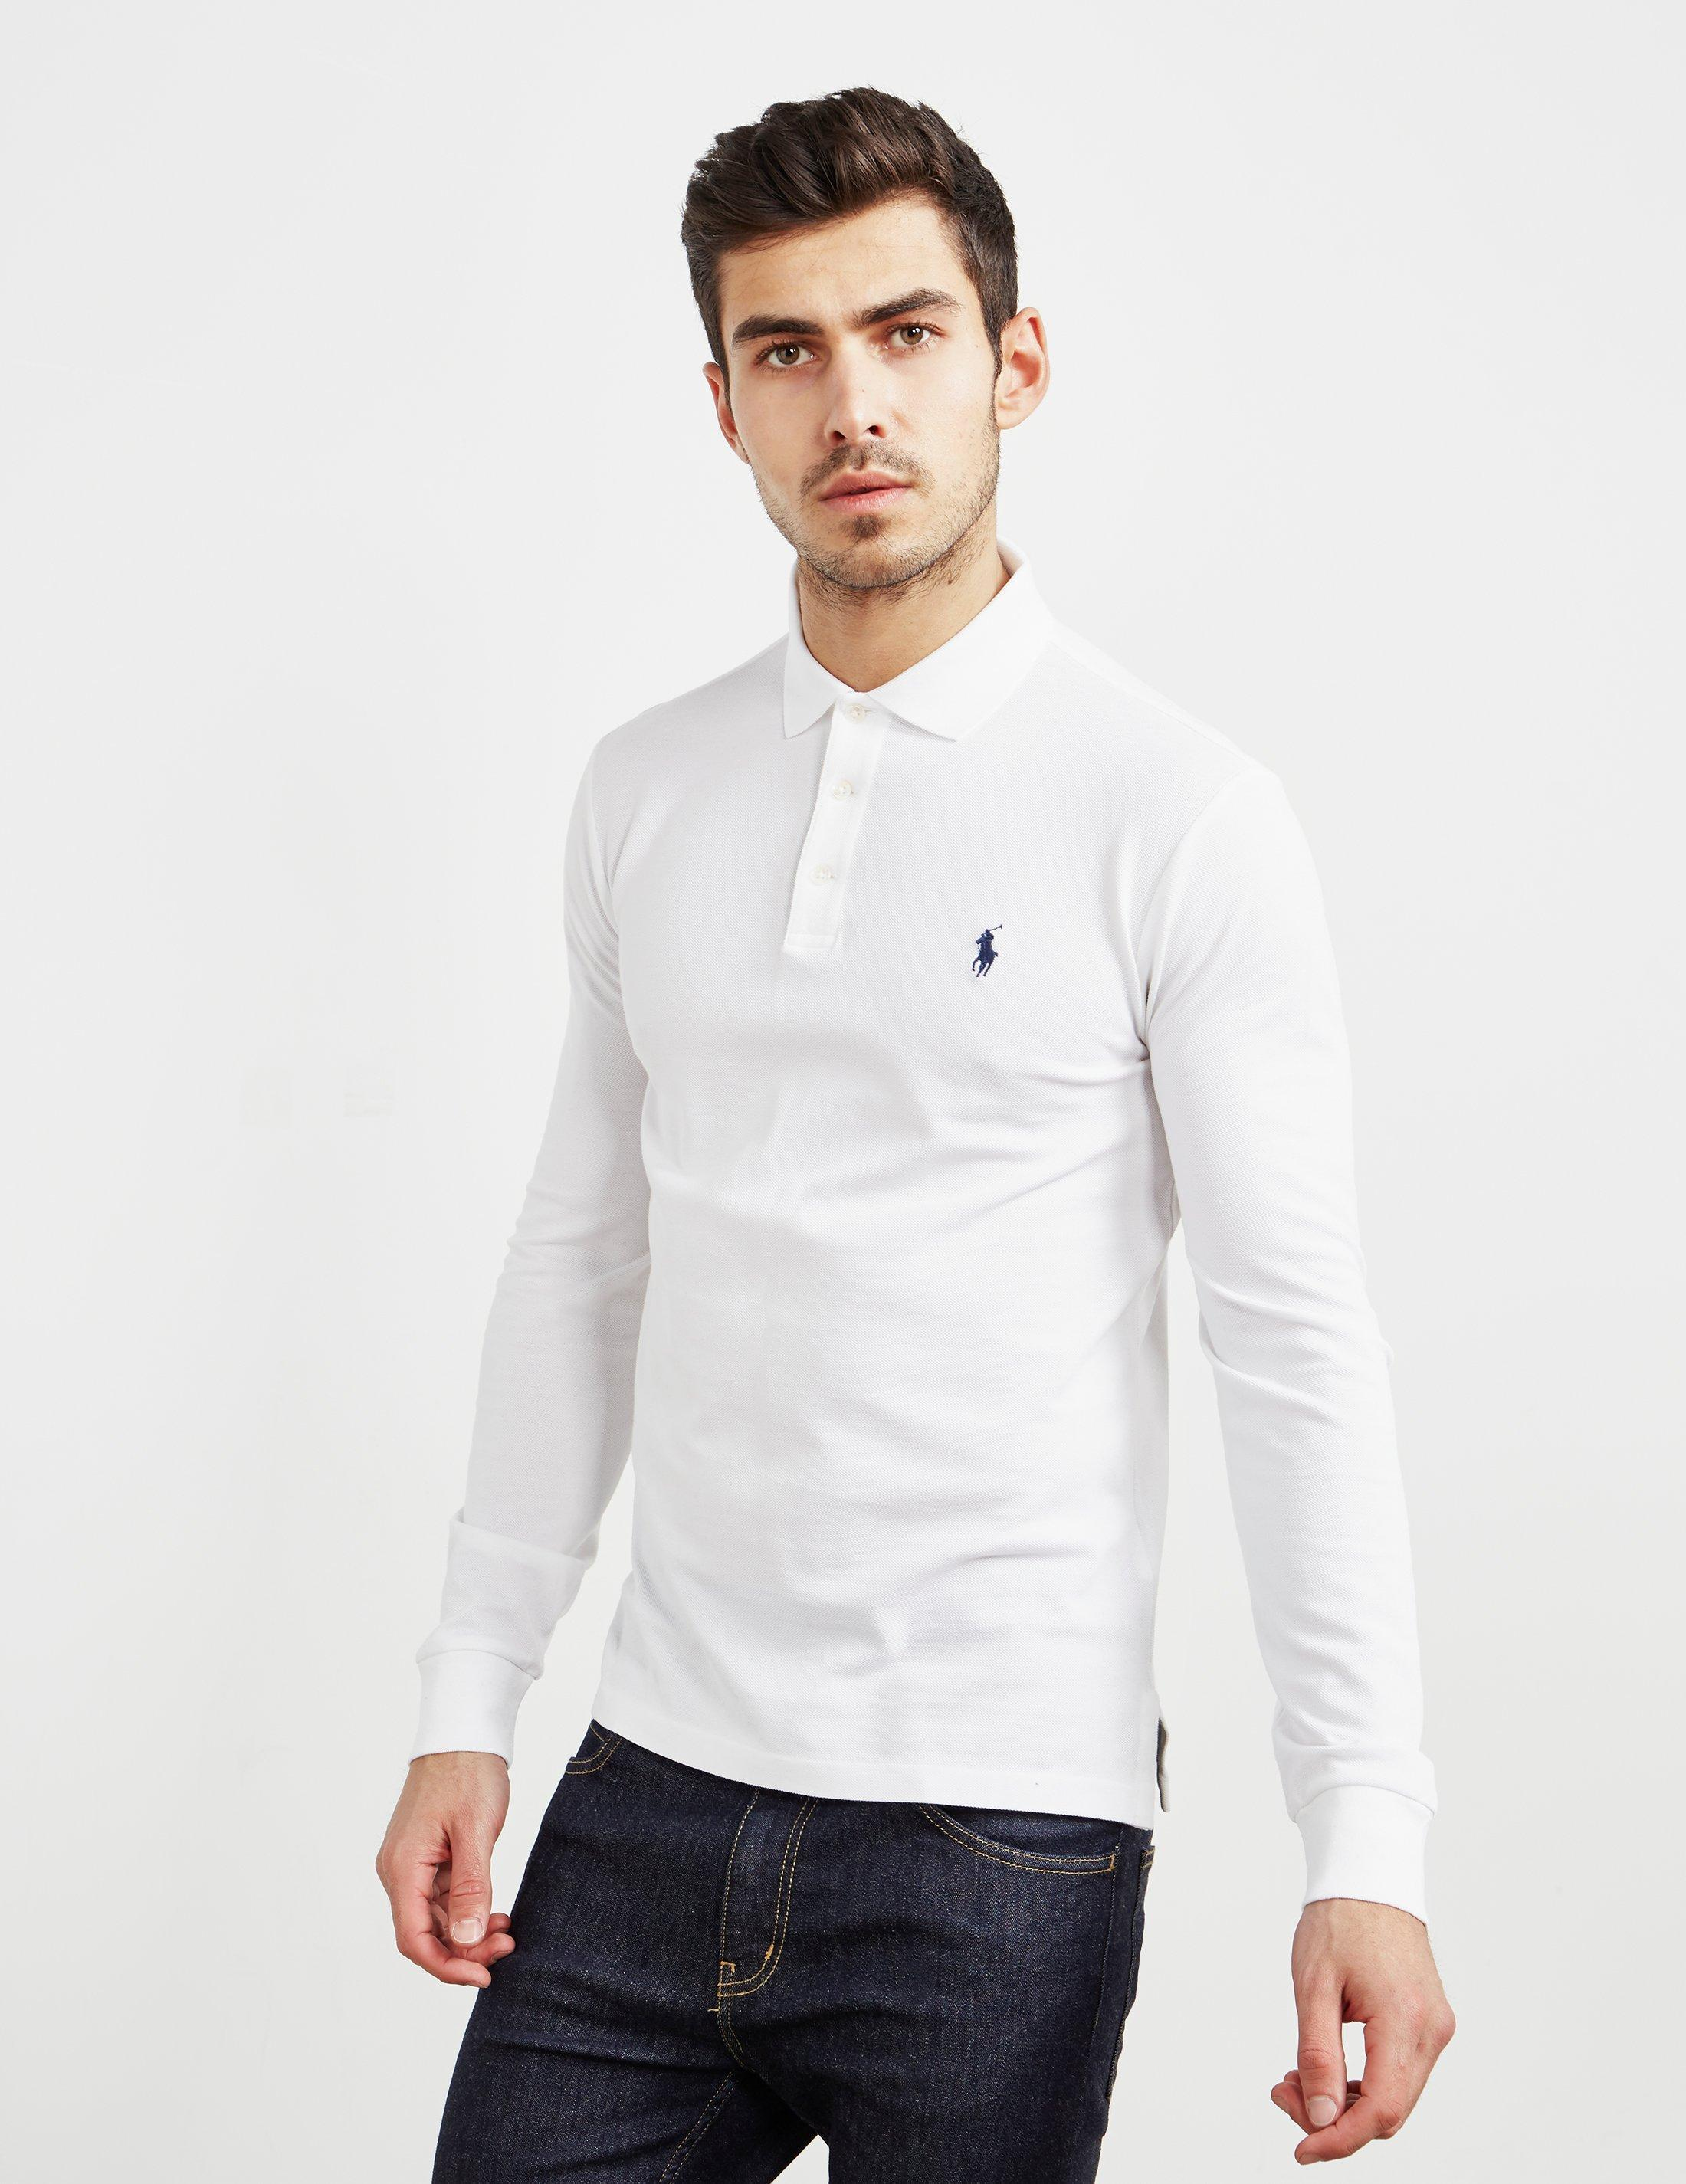 052f004c6560 Polo Ralph Lauren Stretch Long Sleeve Polo Shirt White in White for ...